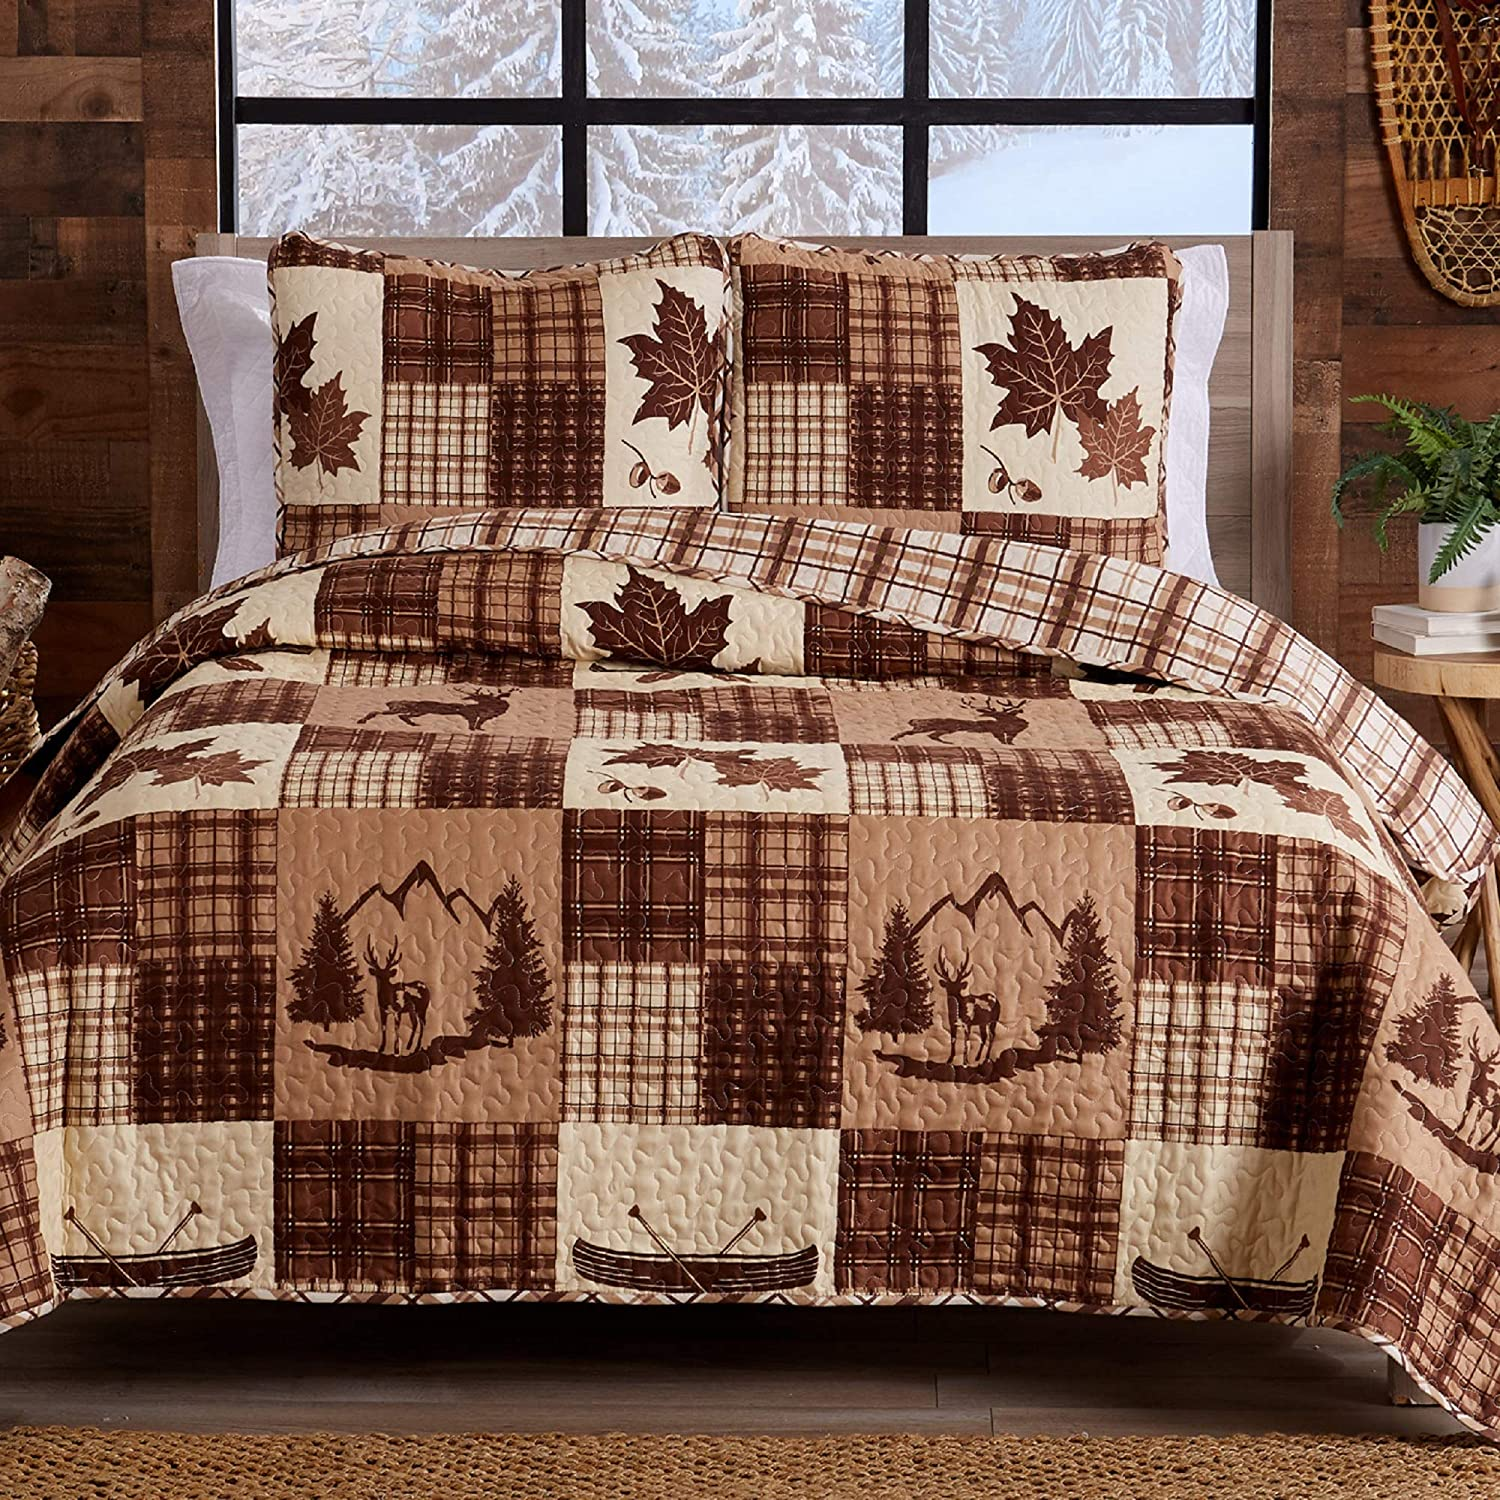 Lodge Bedspread Twin Size Quilt with 2-Piece Sham. Year-end gift Ranking TOP13 Rever 1 Cabin